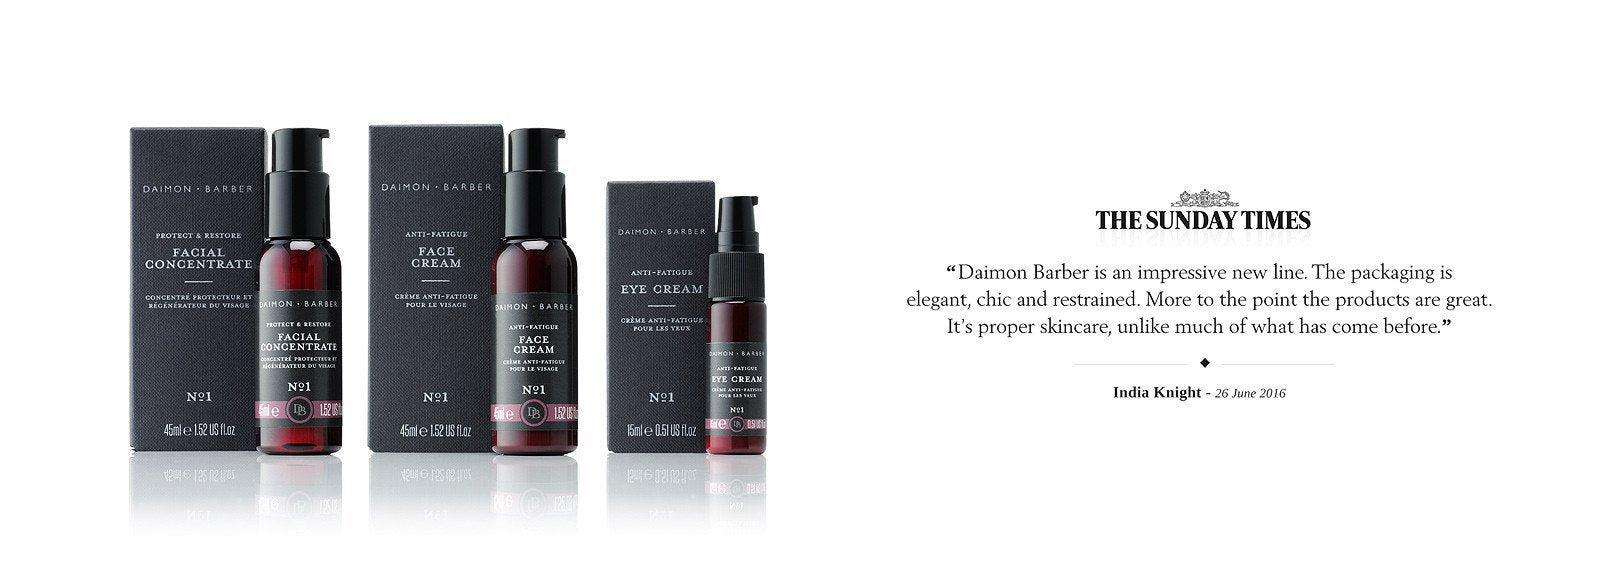 Daimon Barber Proper Skin Care